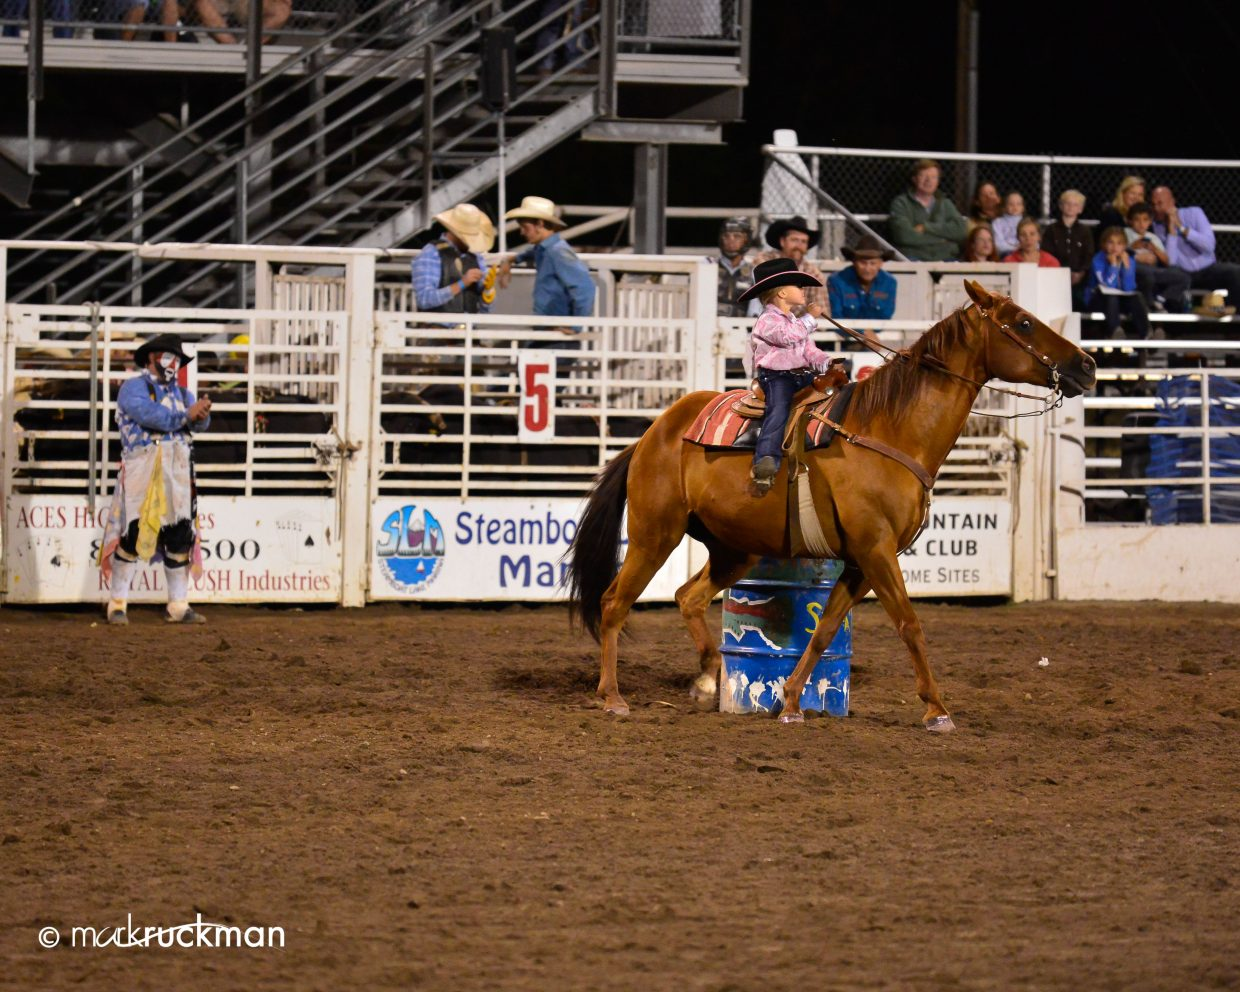 Gary Singer cheering on his 3-year-old daughter Kasey Rae Singer in barrel racing. Submitted by: Mark Ruckman